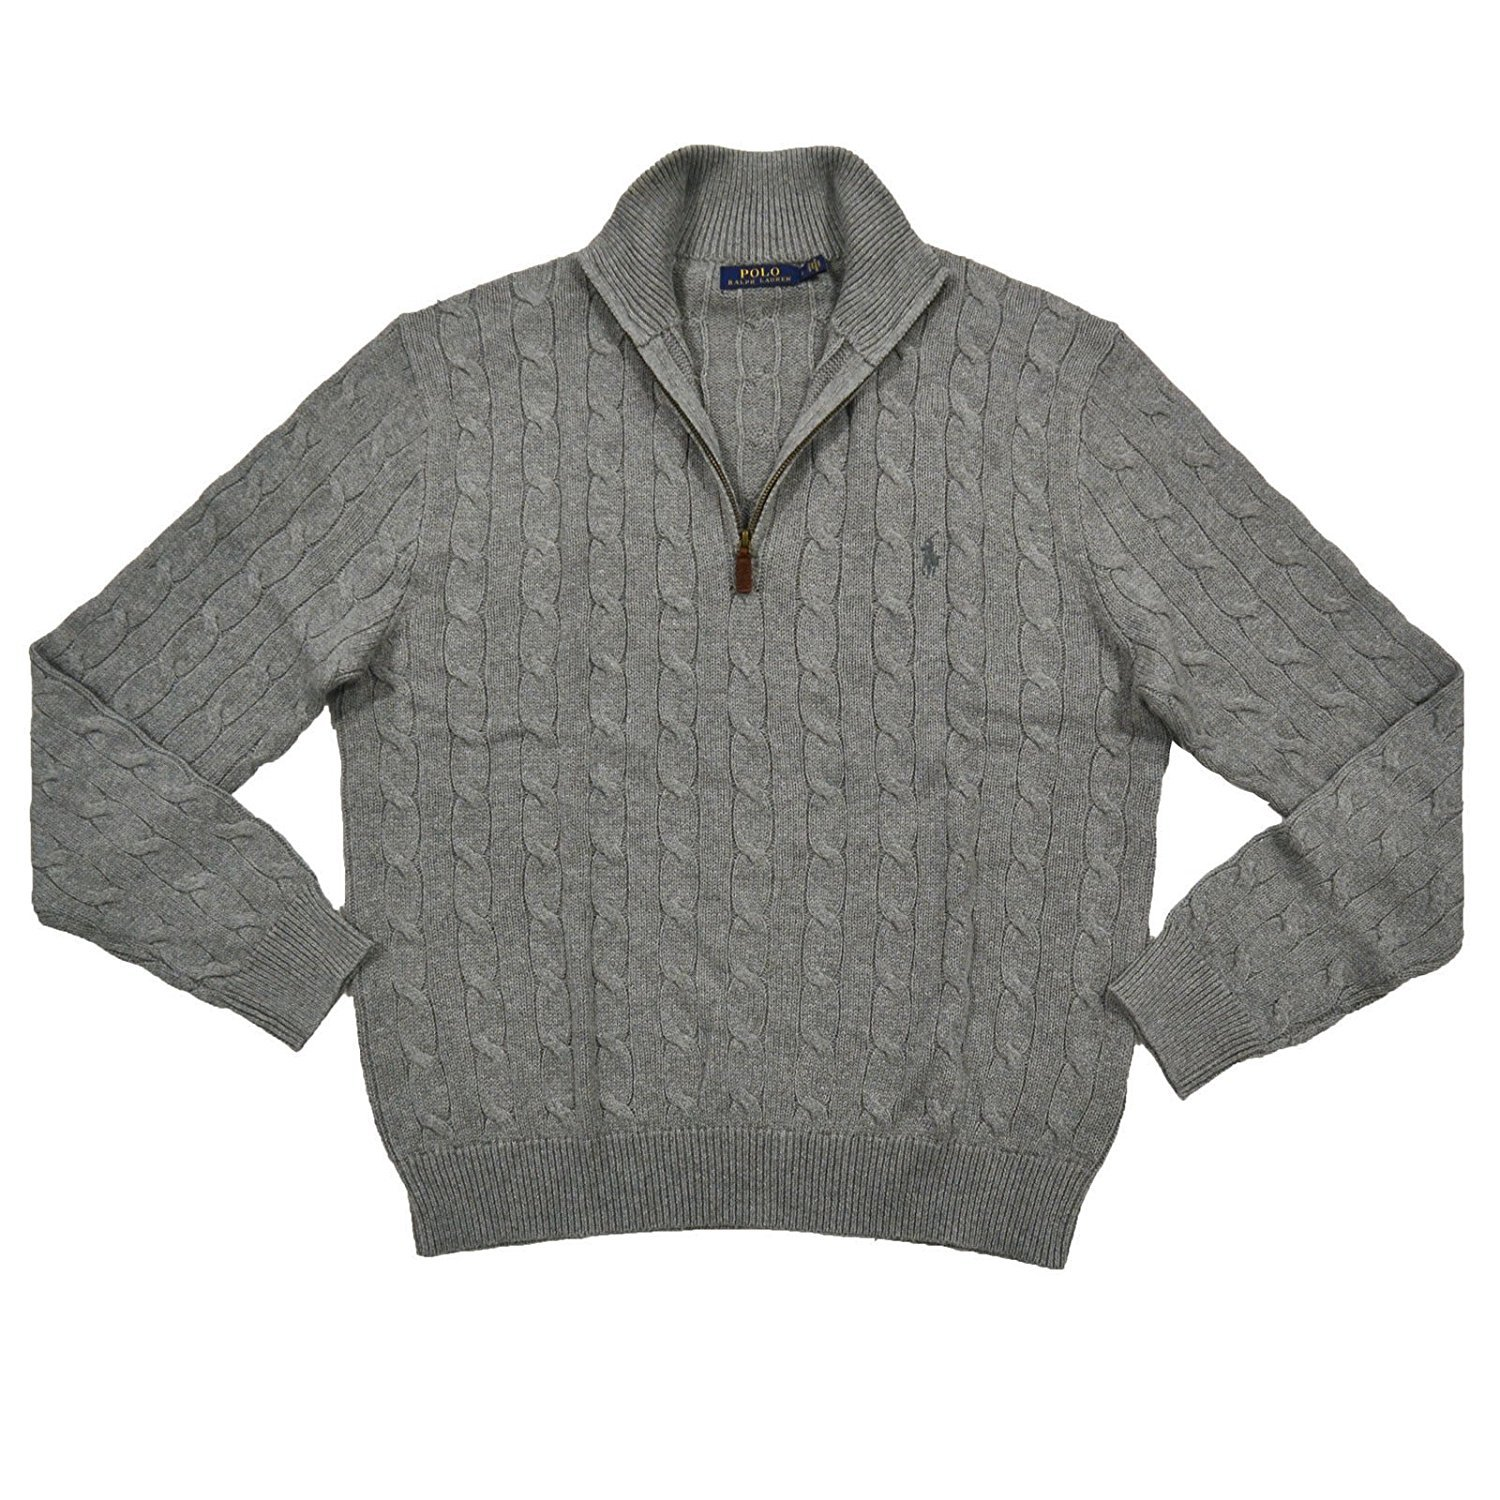 bdf099a7a Top3  Polo Ralph Lauren Mens Cable Knit 1 4 Zip Pullover Sweater